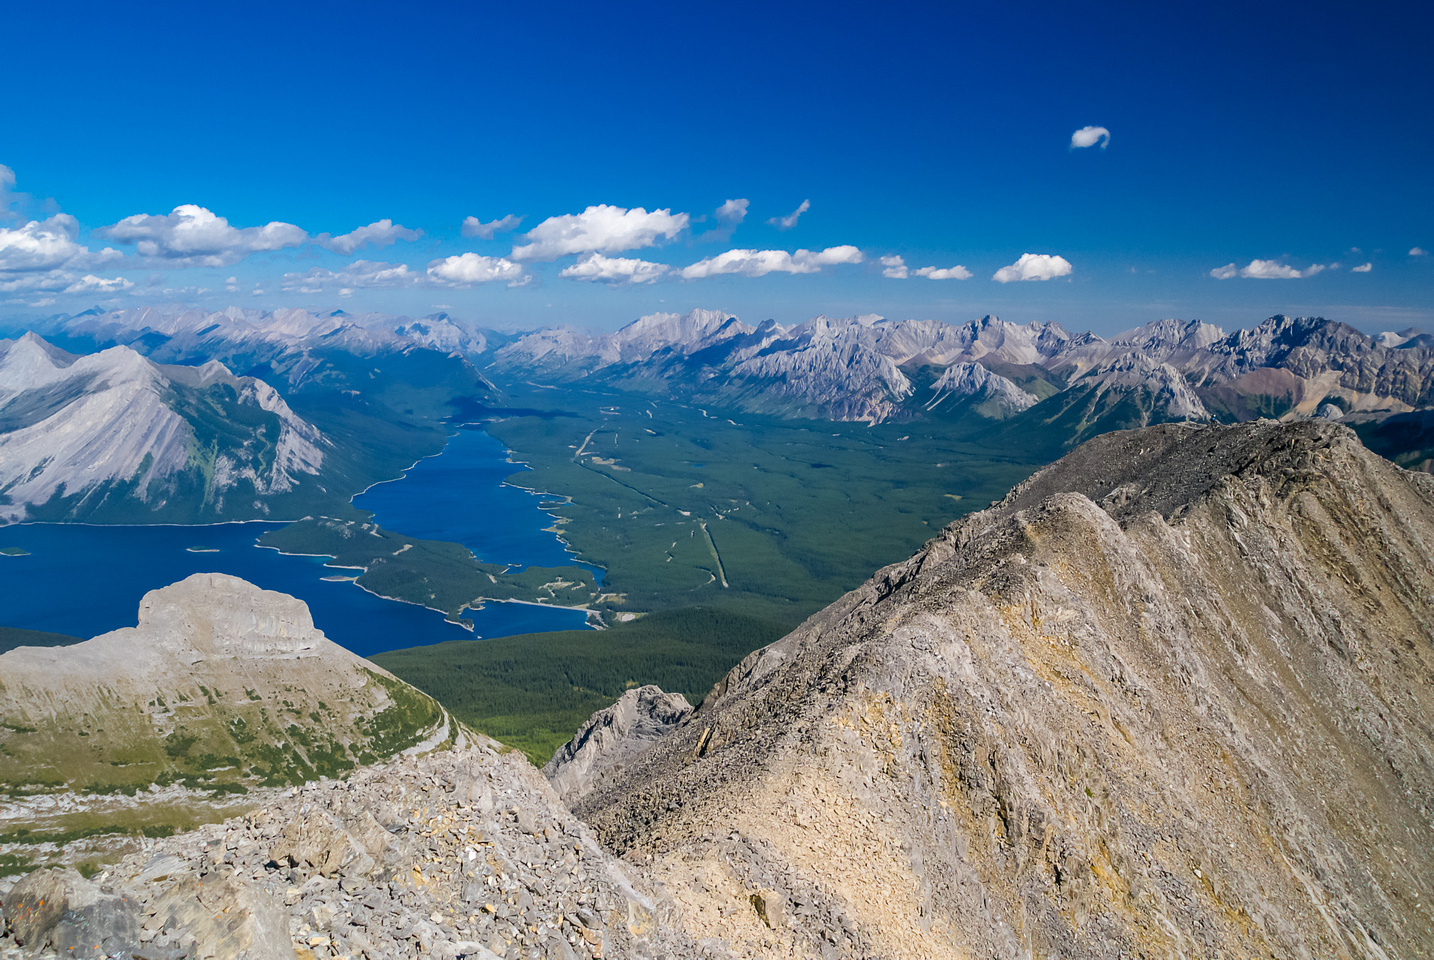 Looking over The Turrent and north up Lower Kananaskis Lake.